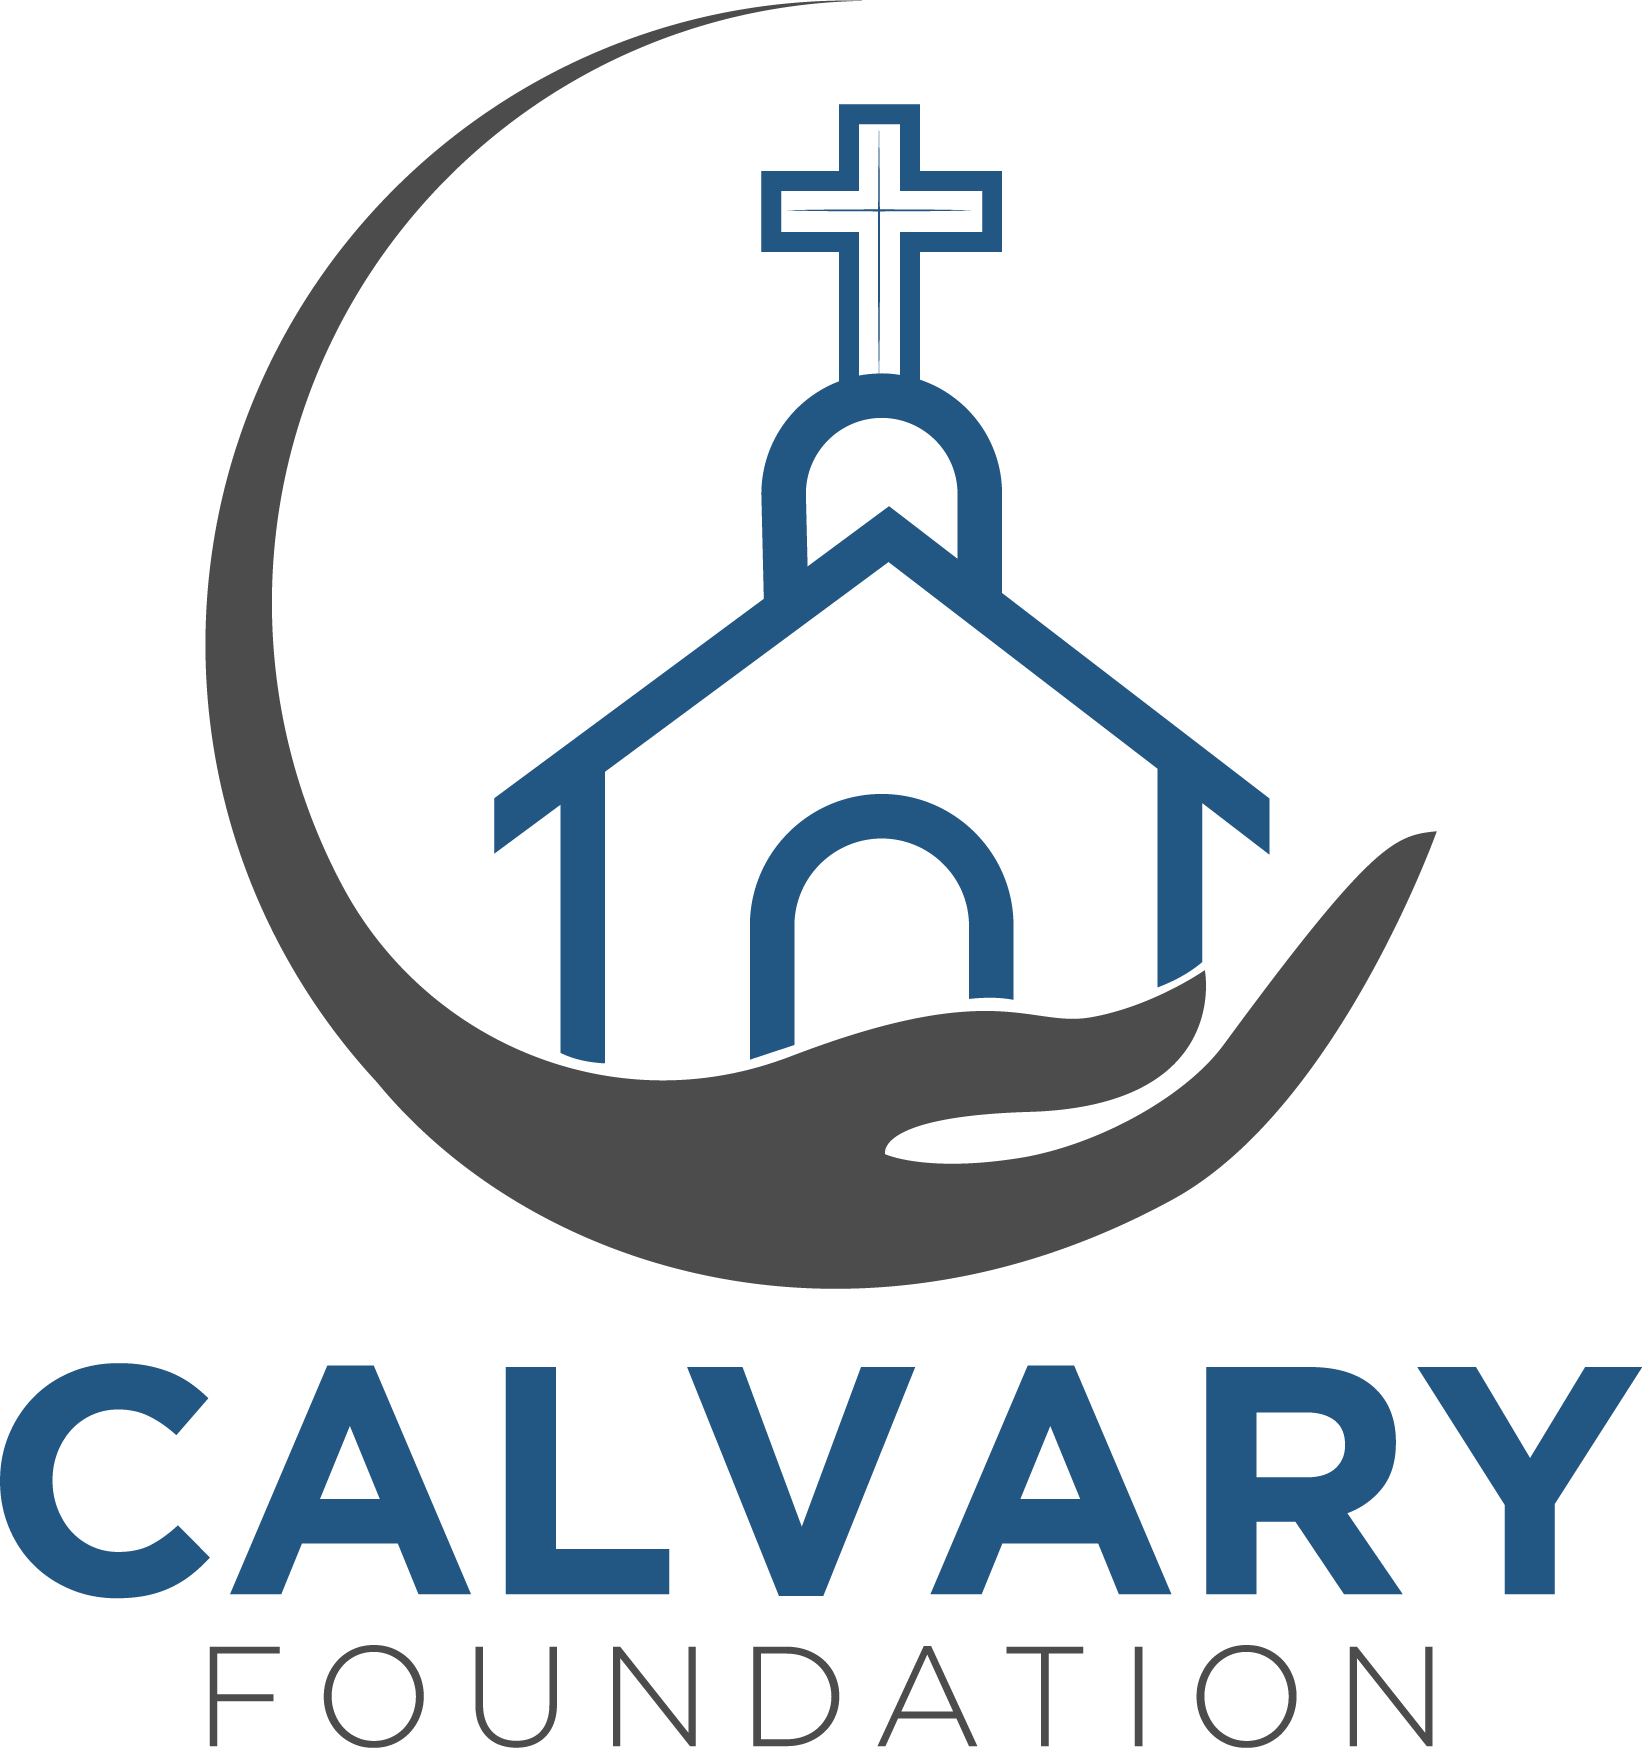 Church Foundation looking for a new logo!